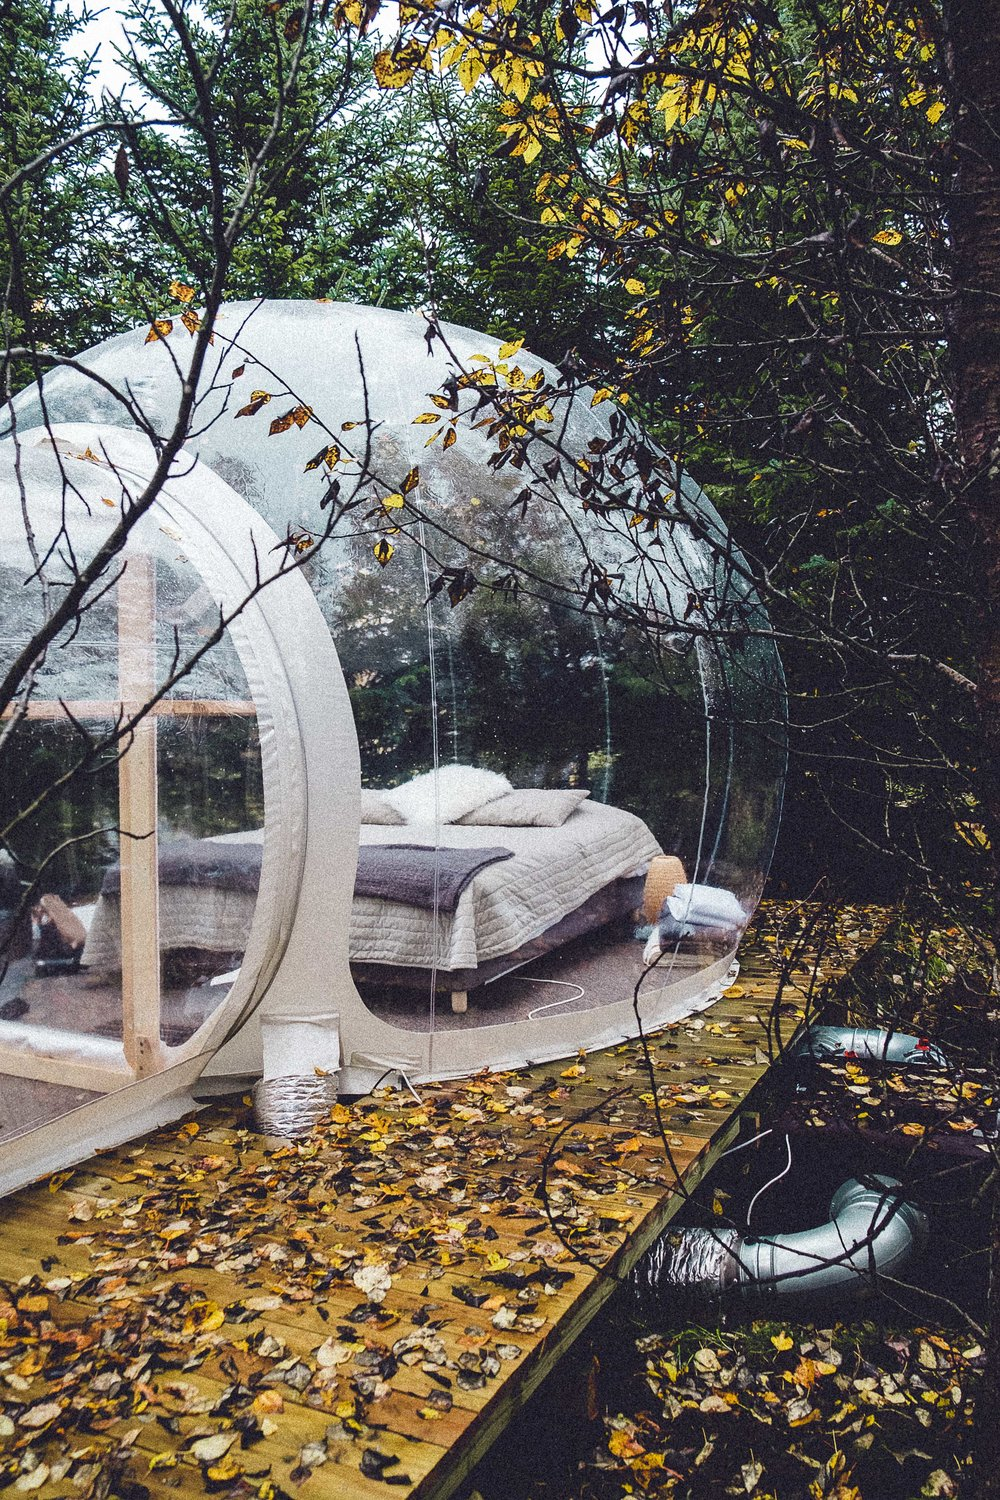 Rachel Off Duty: 3 Unique, Remote Hotels You Should Stay In - The Buubble Hotel